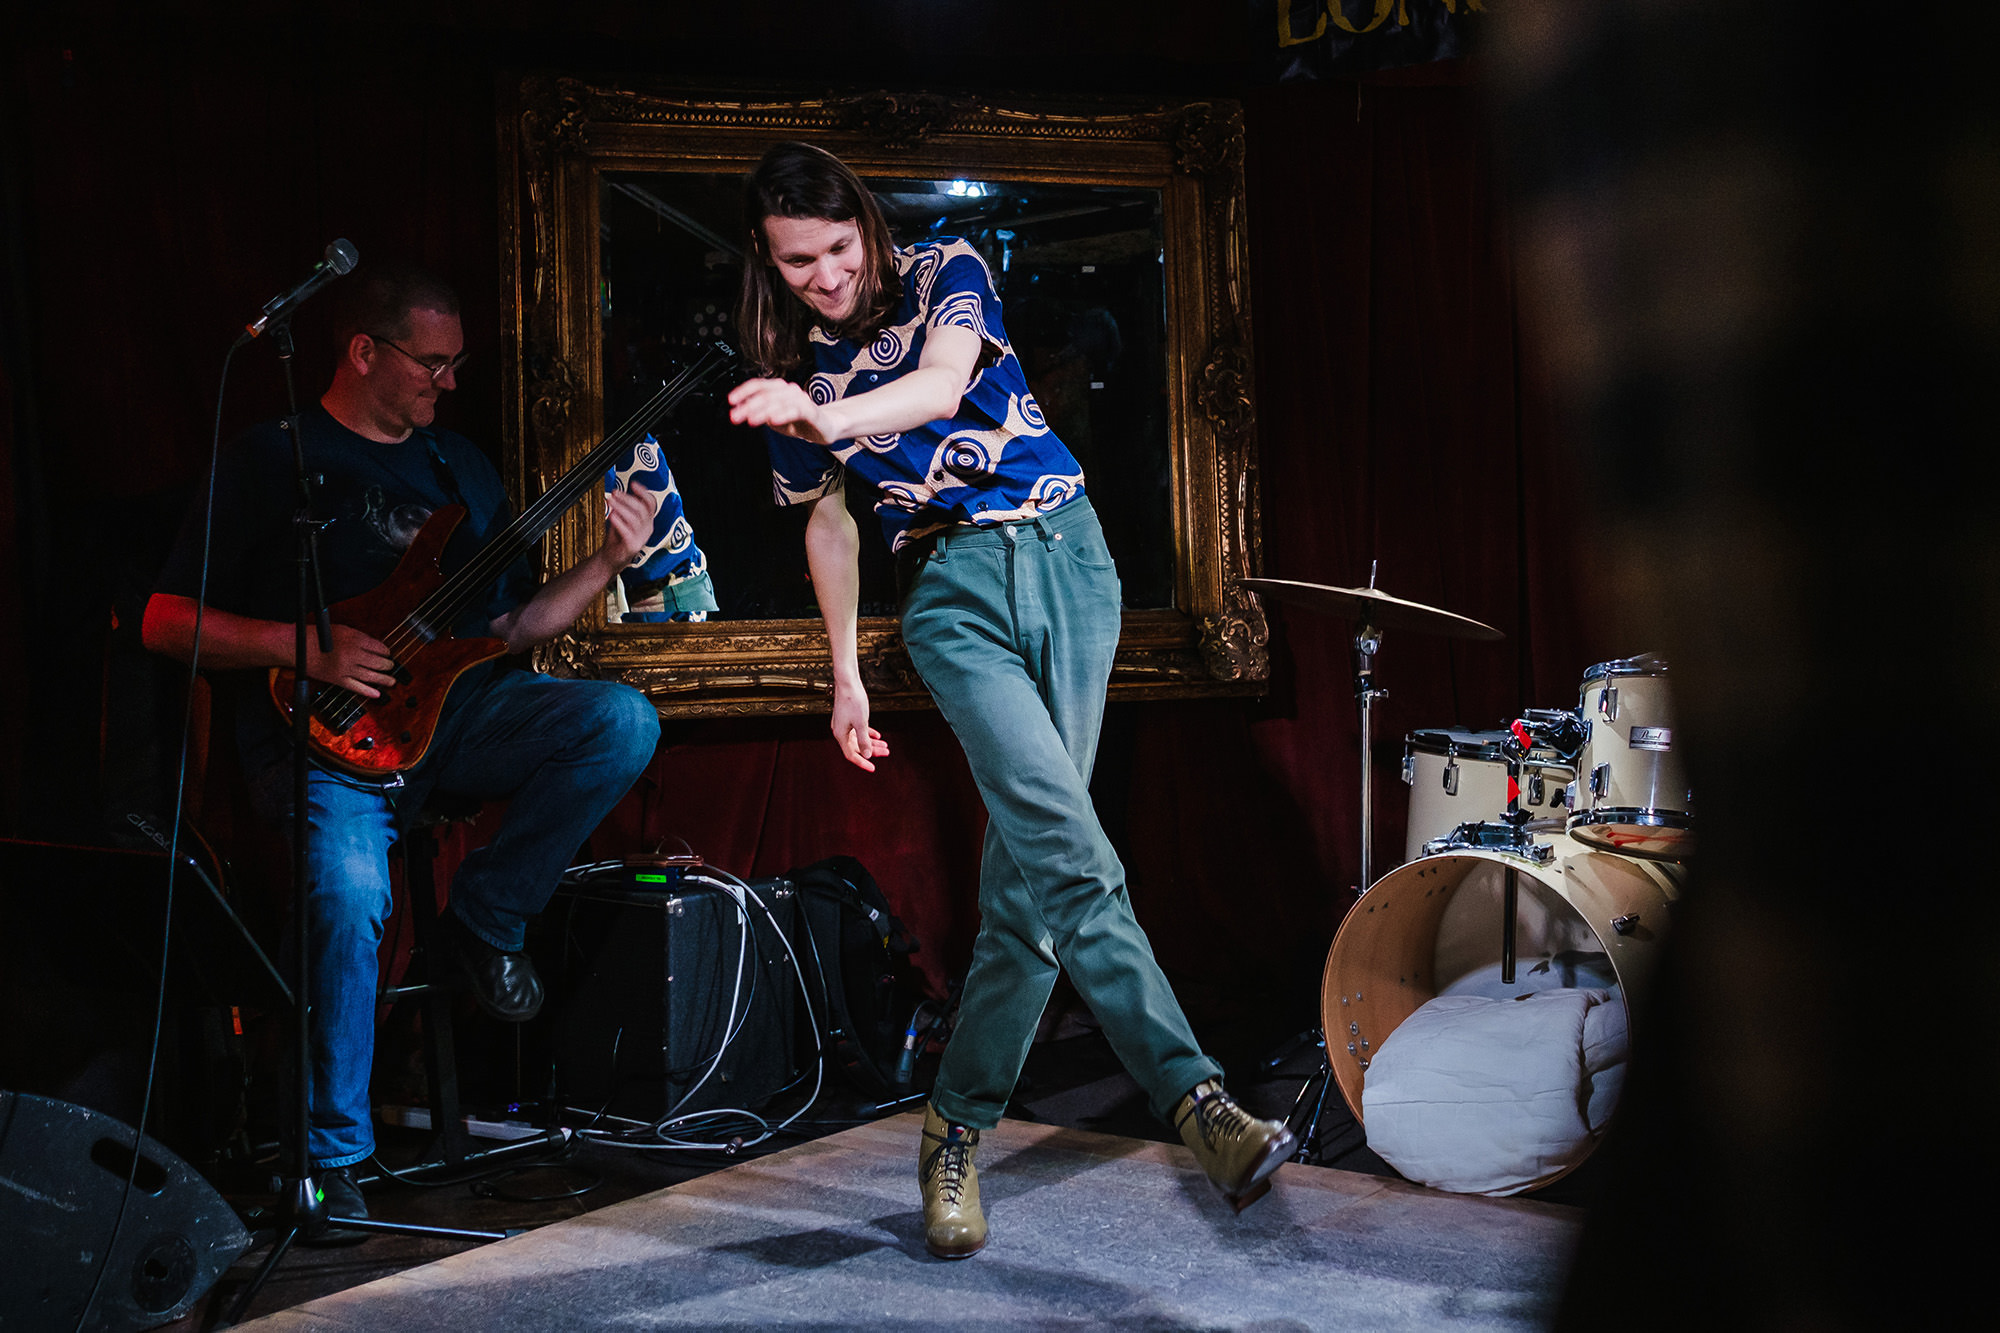 tap dancer on stage in London